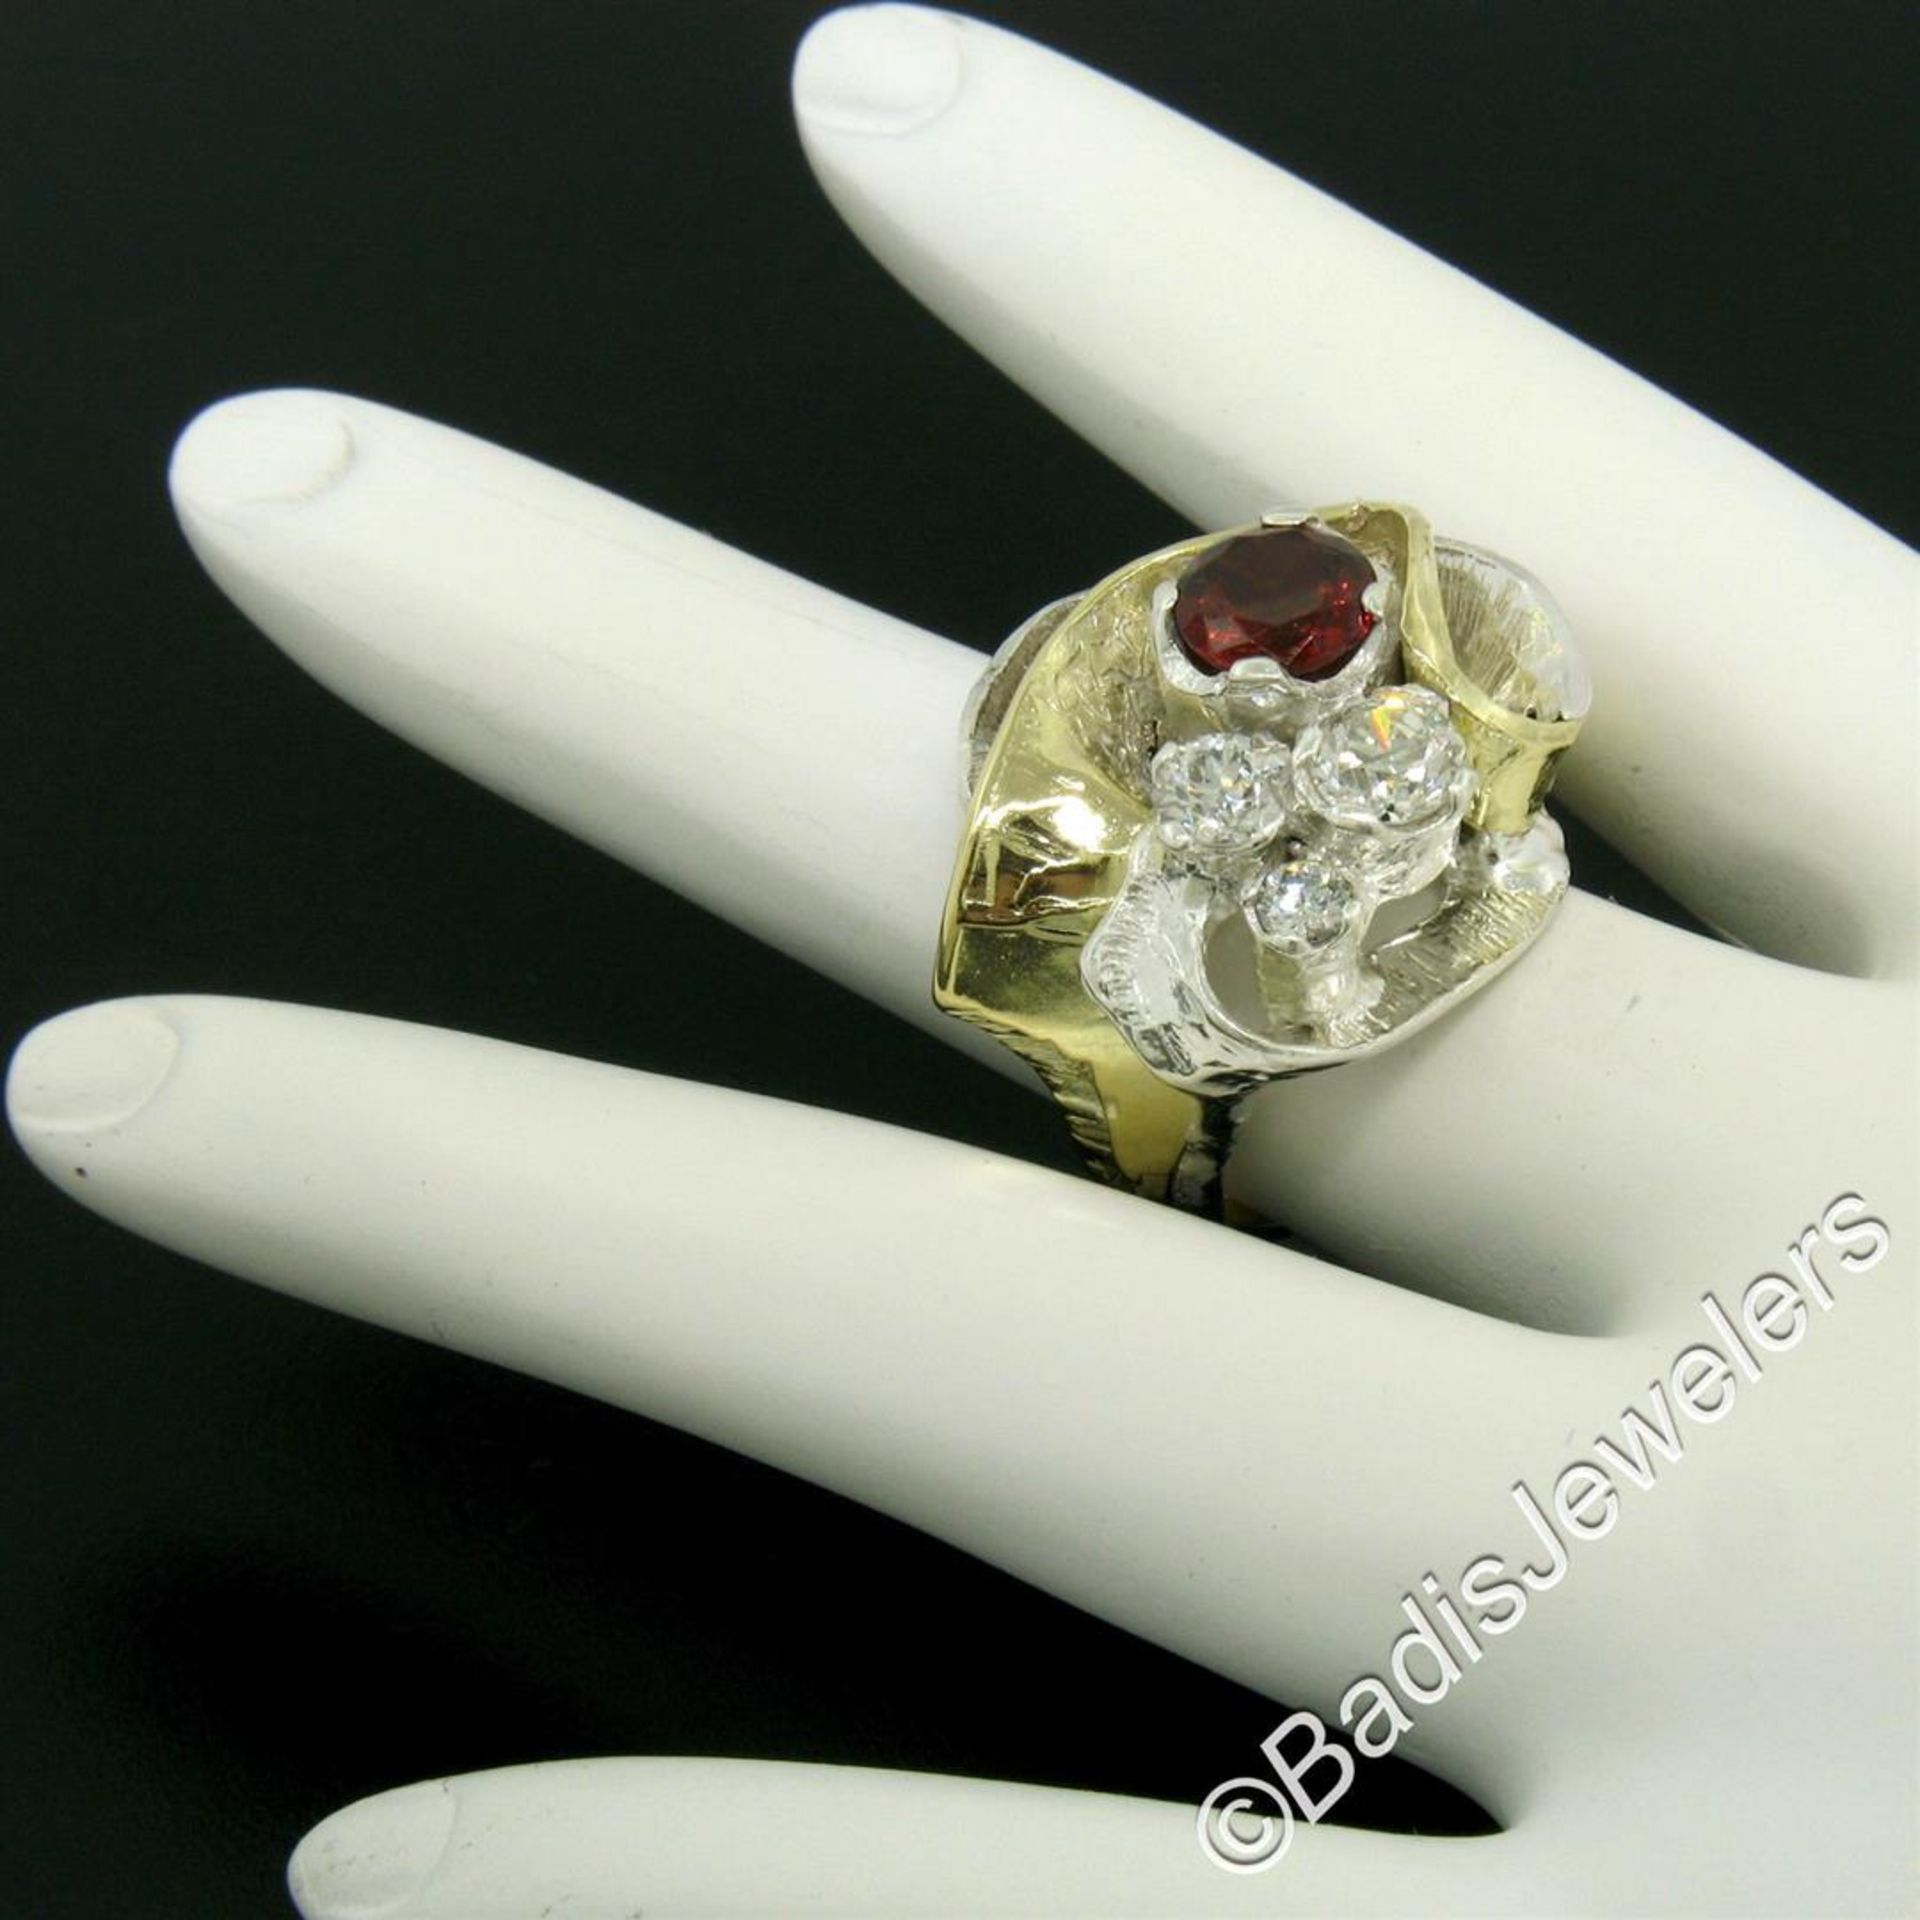 18kt Yellow Gold and Sterling Silver 2.73ctw Garnet and Diamond Cocktail Ring - Image 7 of 9